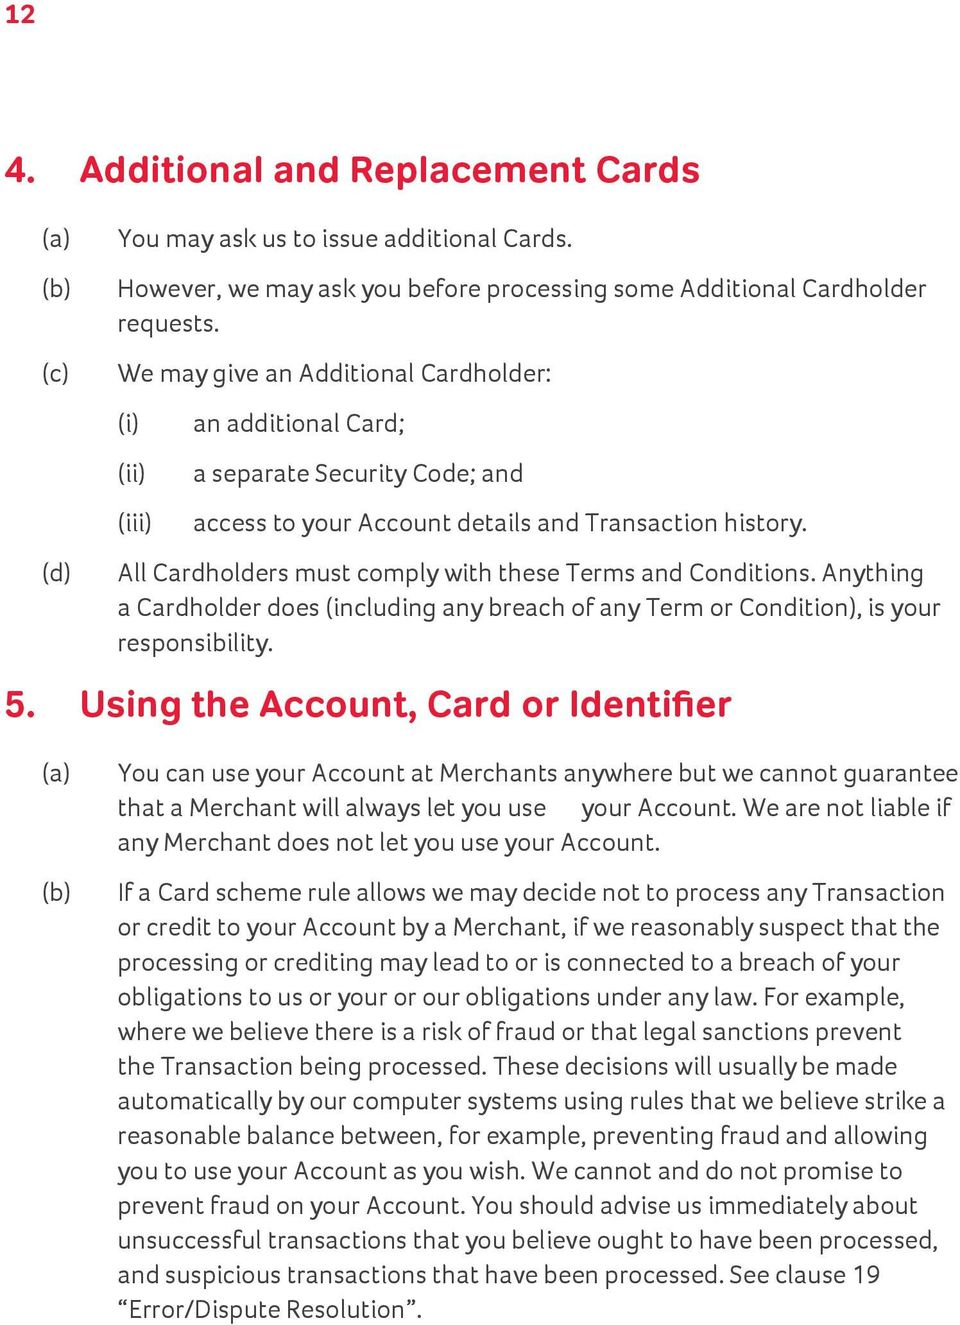 All Cardholders must comply with these Terms and Conditions. Anything a Cardholder does (including any breach of any Term or Condition), is your responsibility. 5.